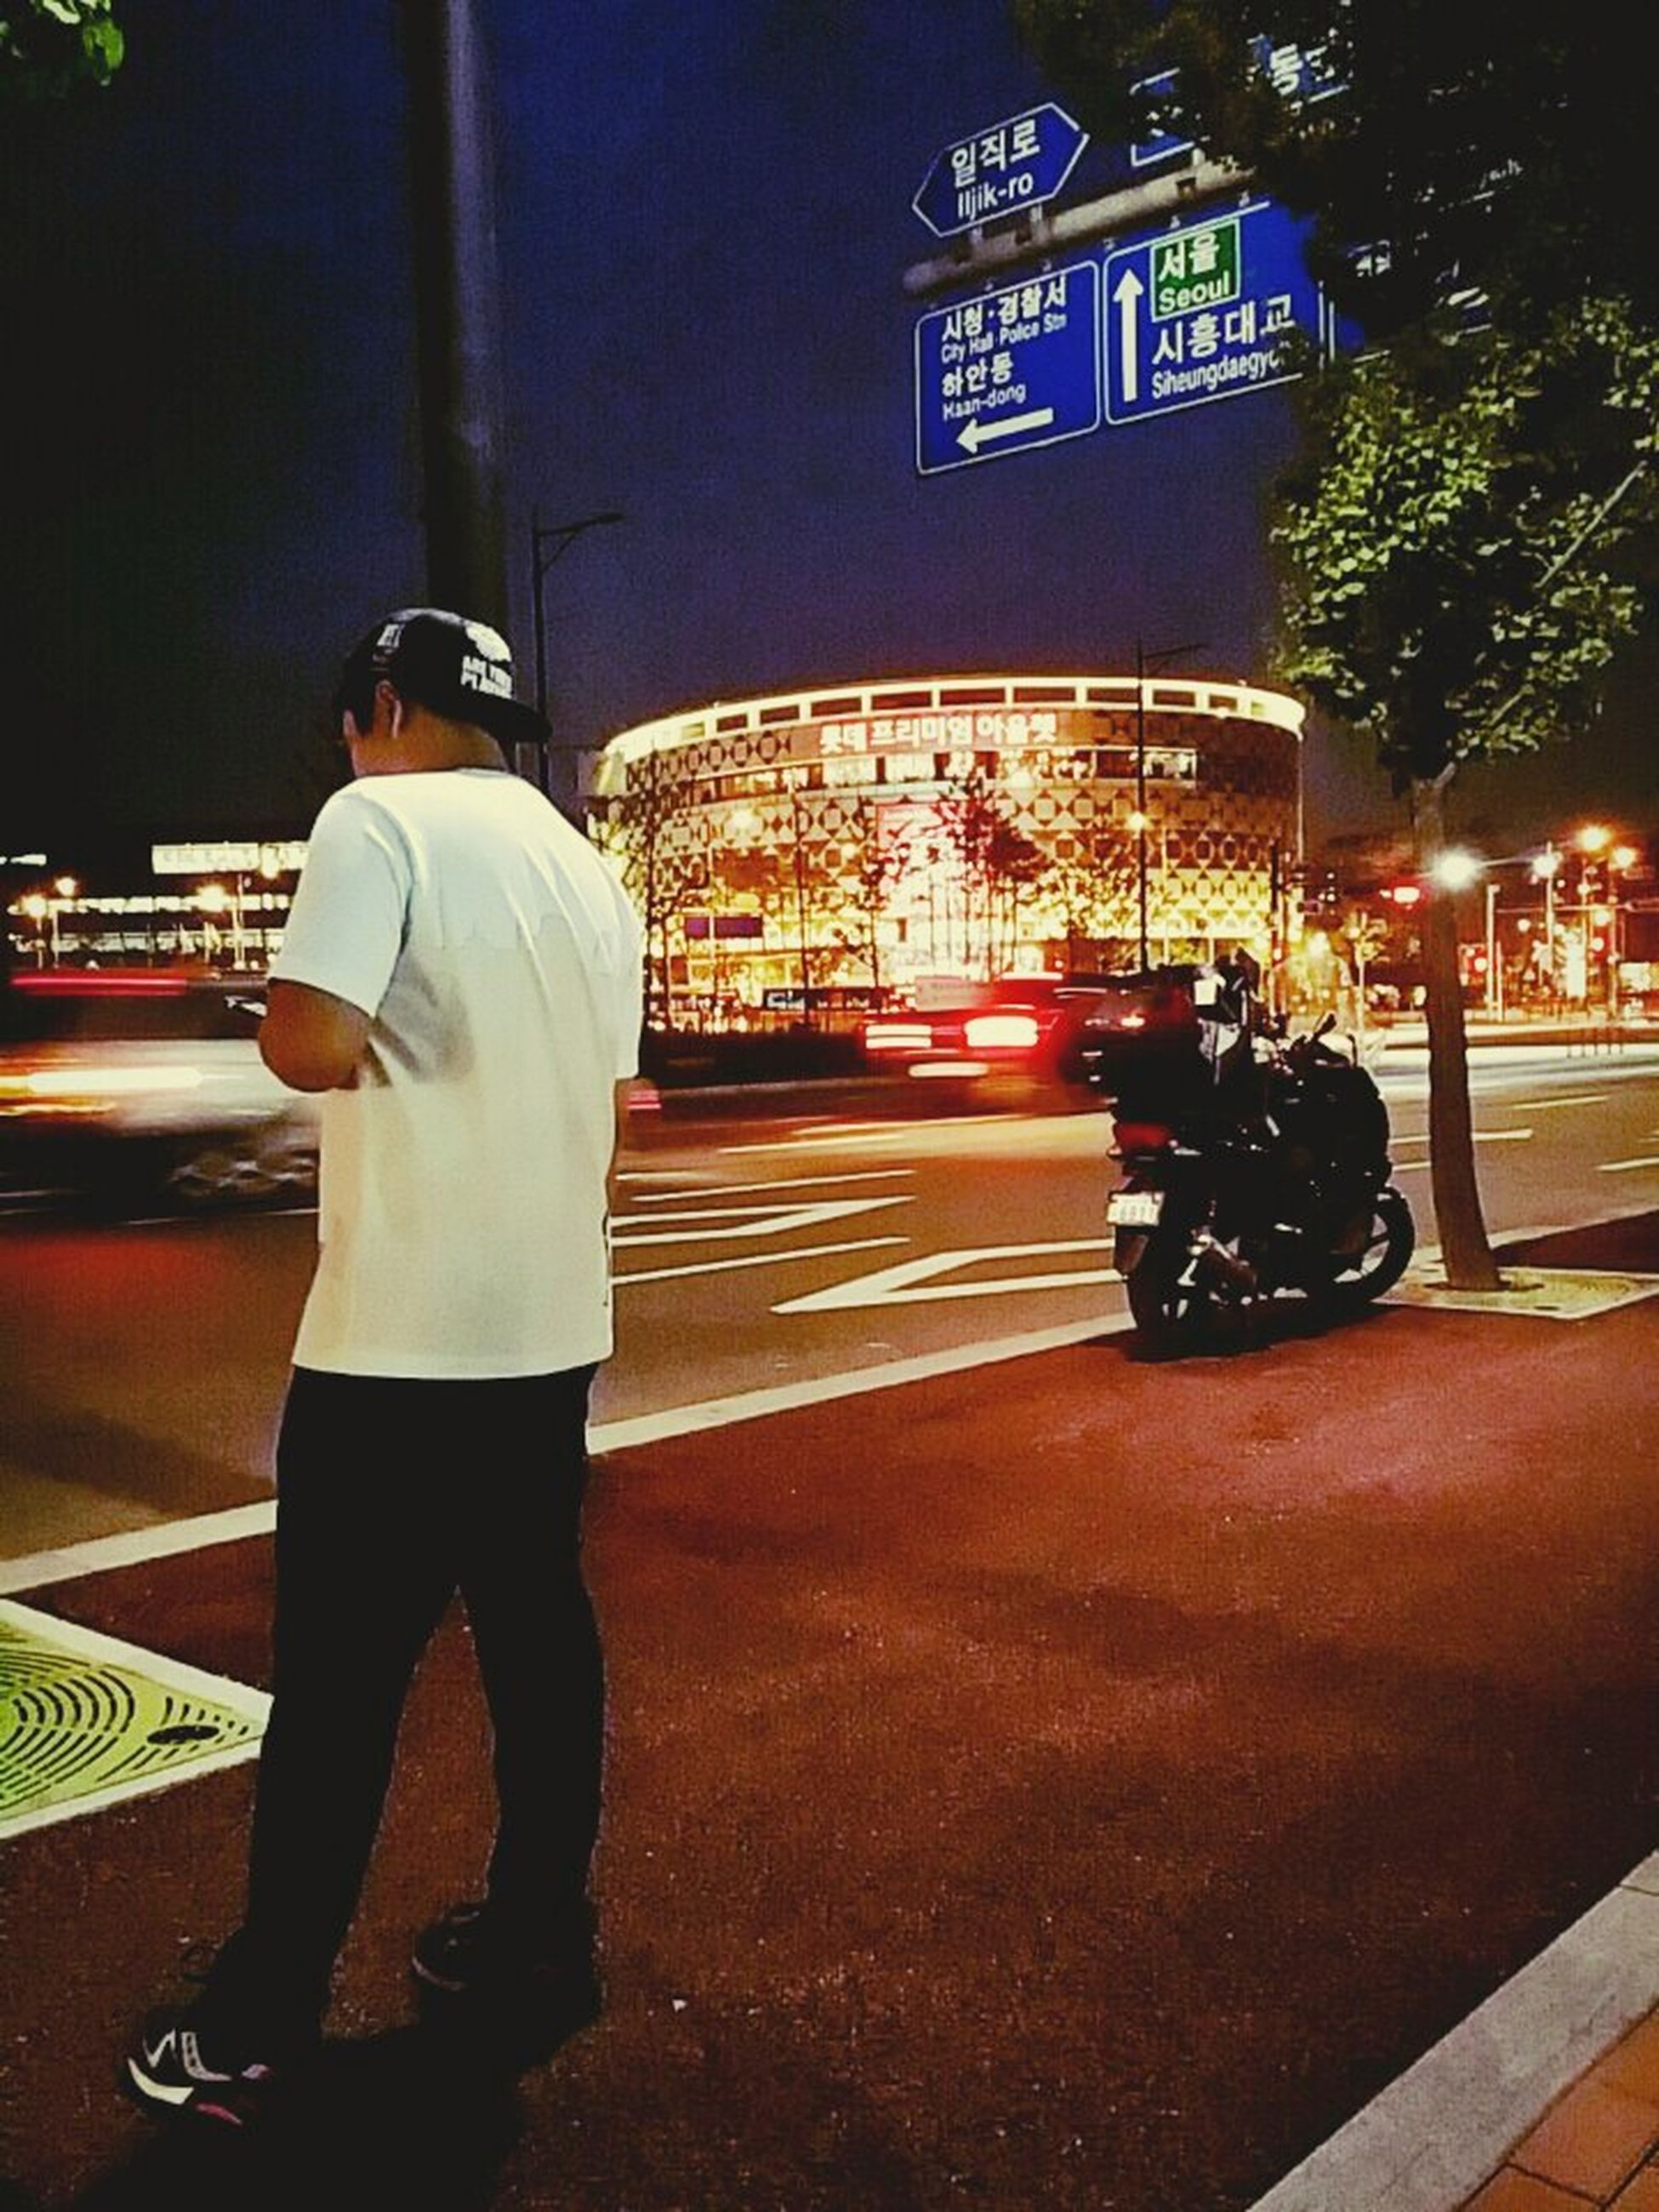 transportation, men, night, lifestyles, rear view, illuminated, city life, street, city, full length, communication, mode of transport, leisure activity, casual clothing, land vehicle, travel, text, standing